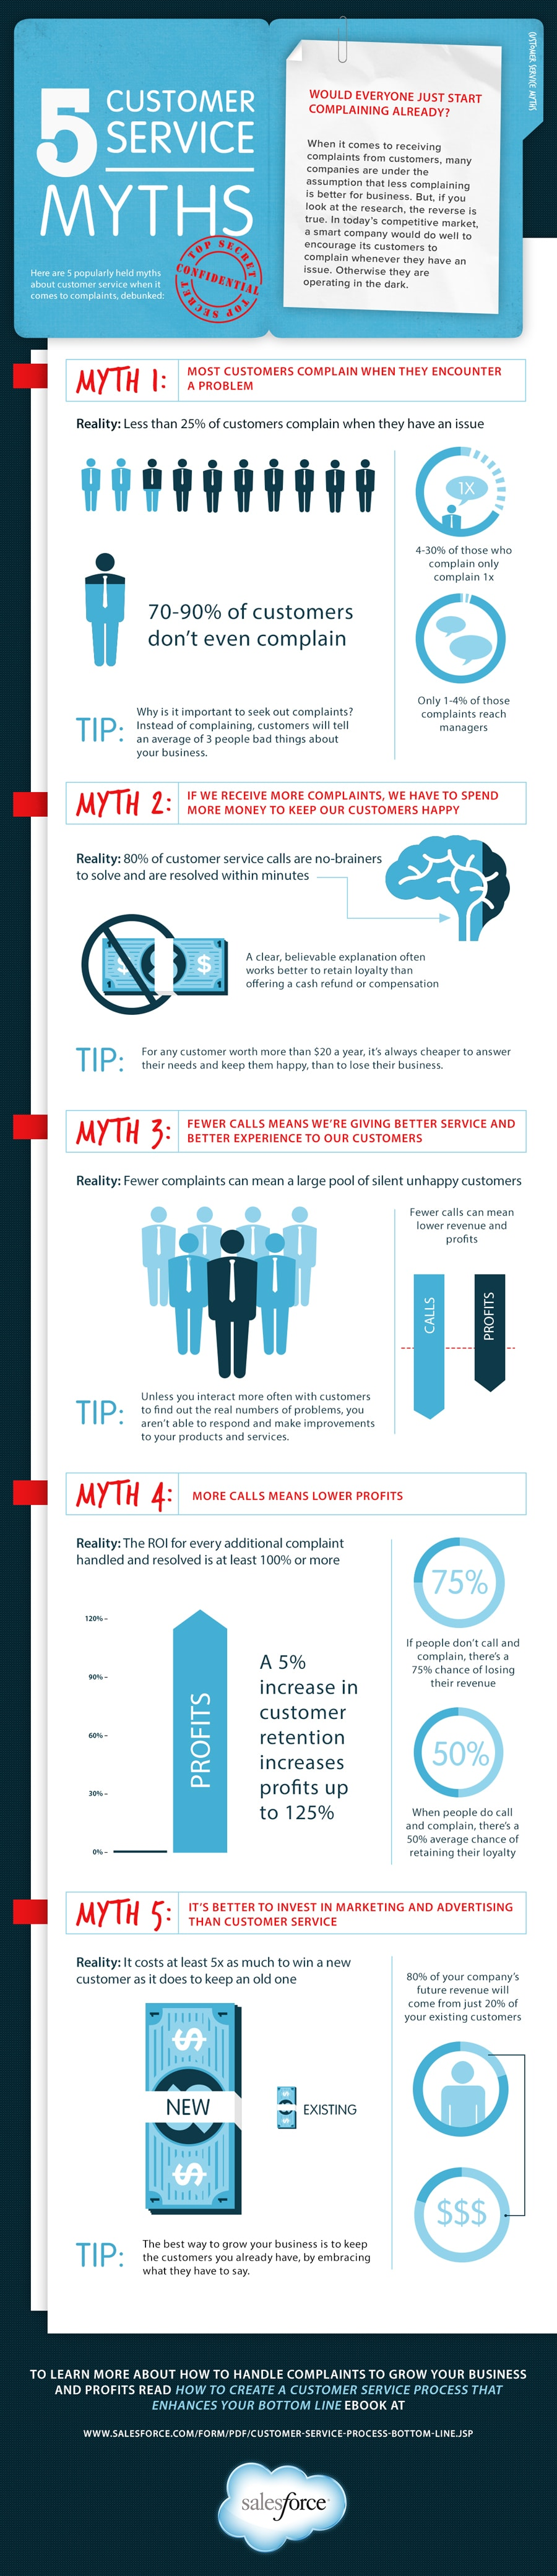 5 Customer Service Myths Worth Knowing About [Infographic]